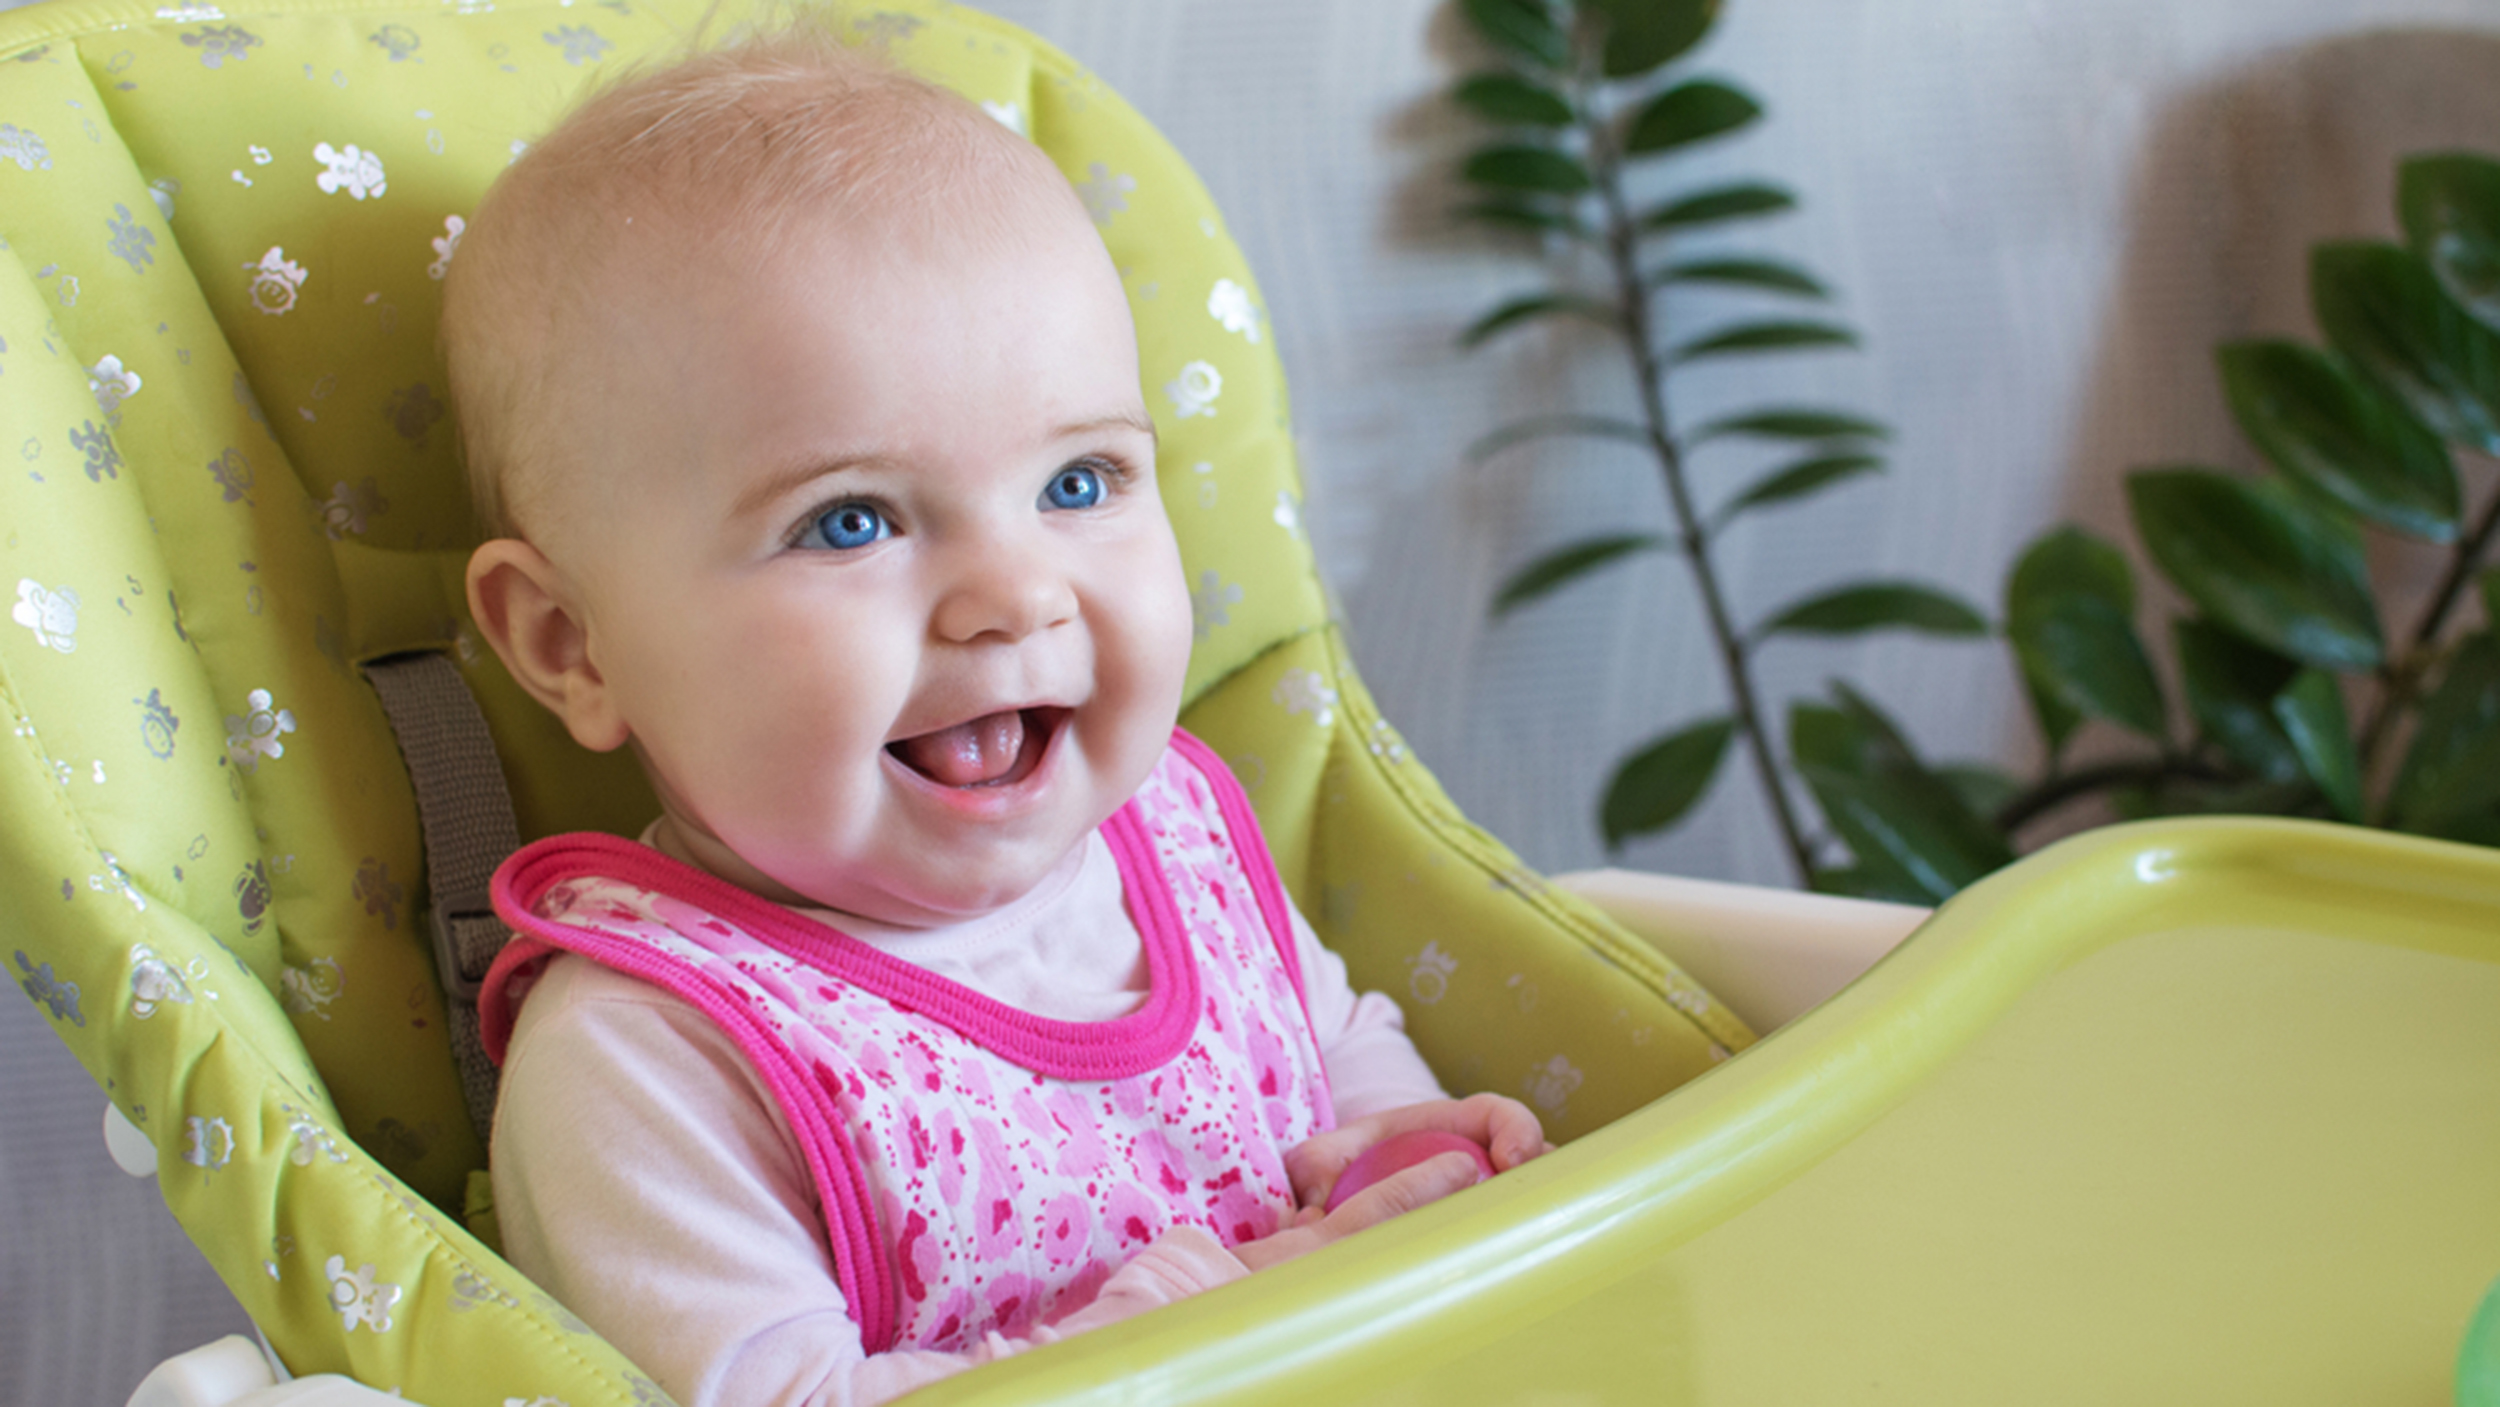 Top 6 finger foods that are safe and delicious for your infant